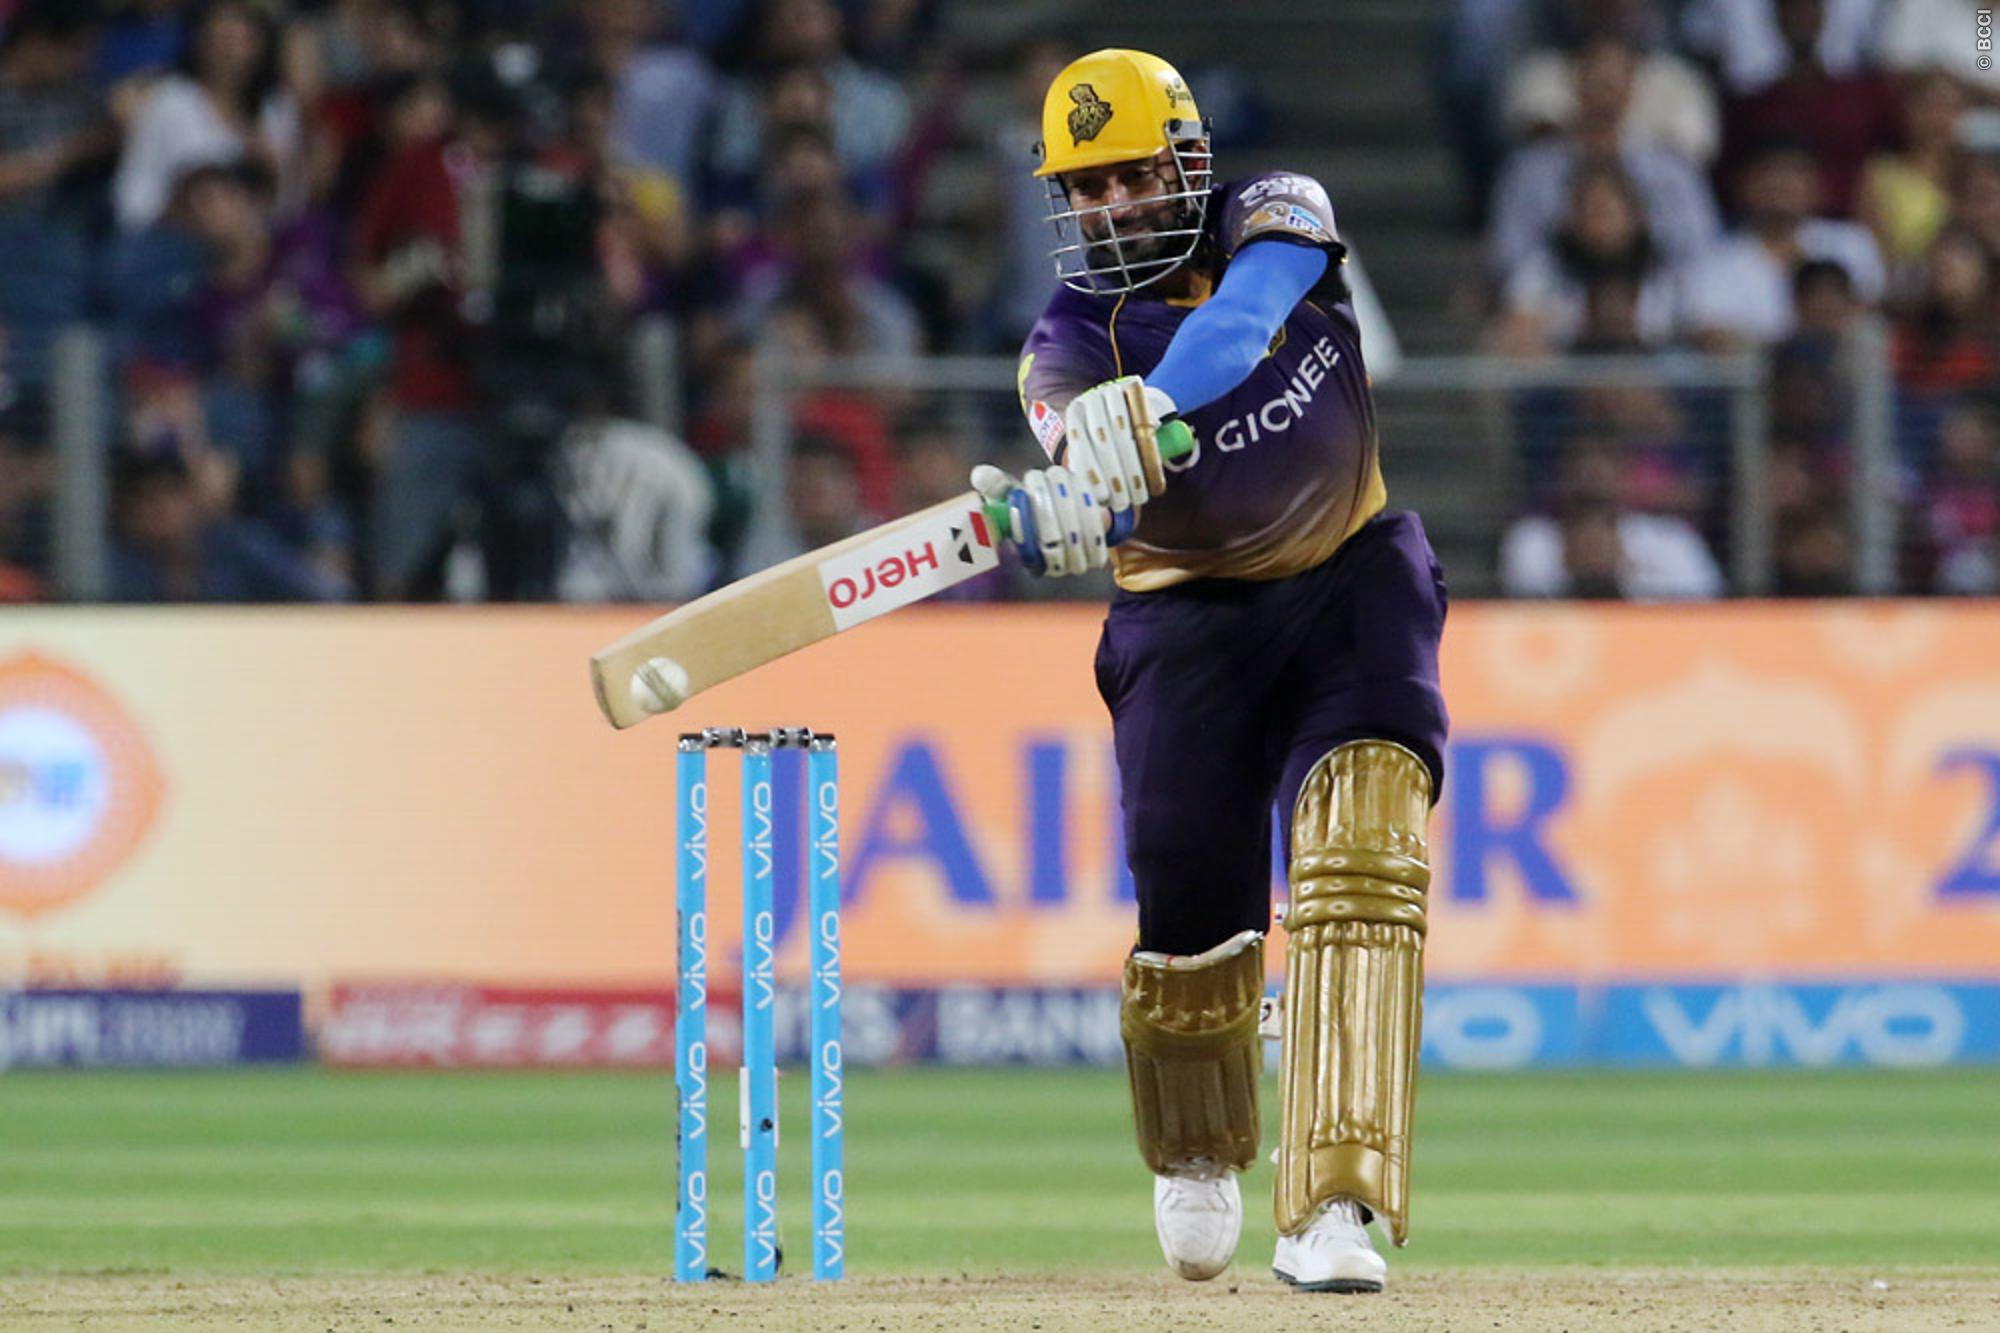 IPL 2017: Robin Uthappa Fearless Approach is Refreshing